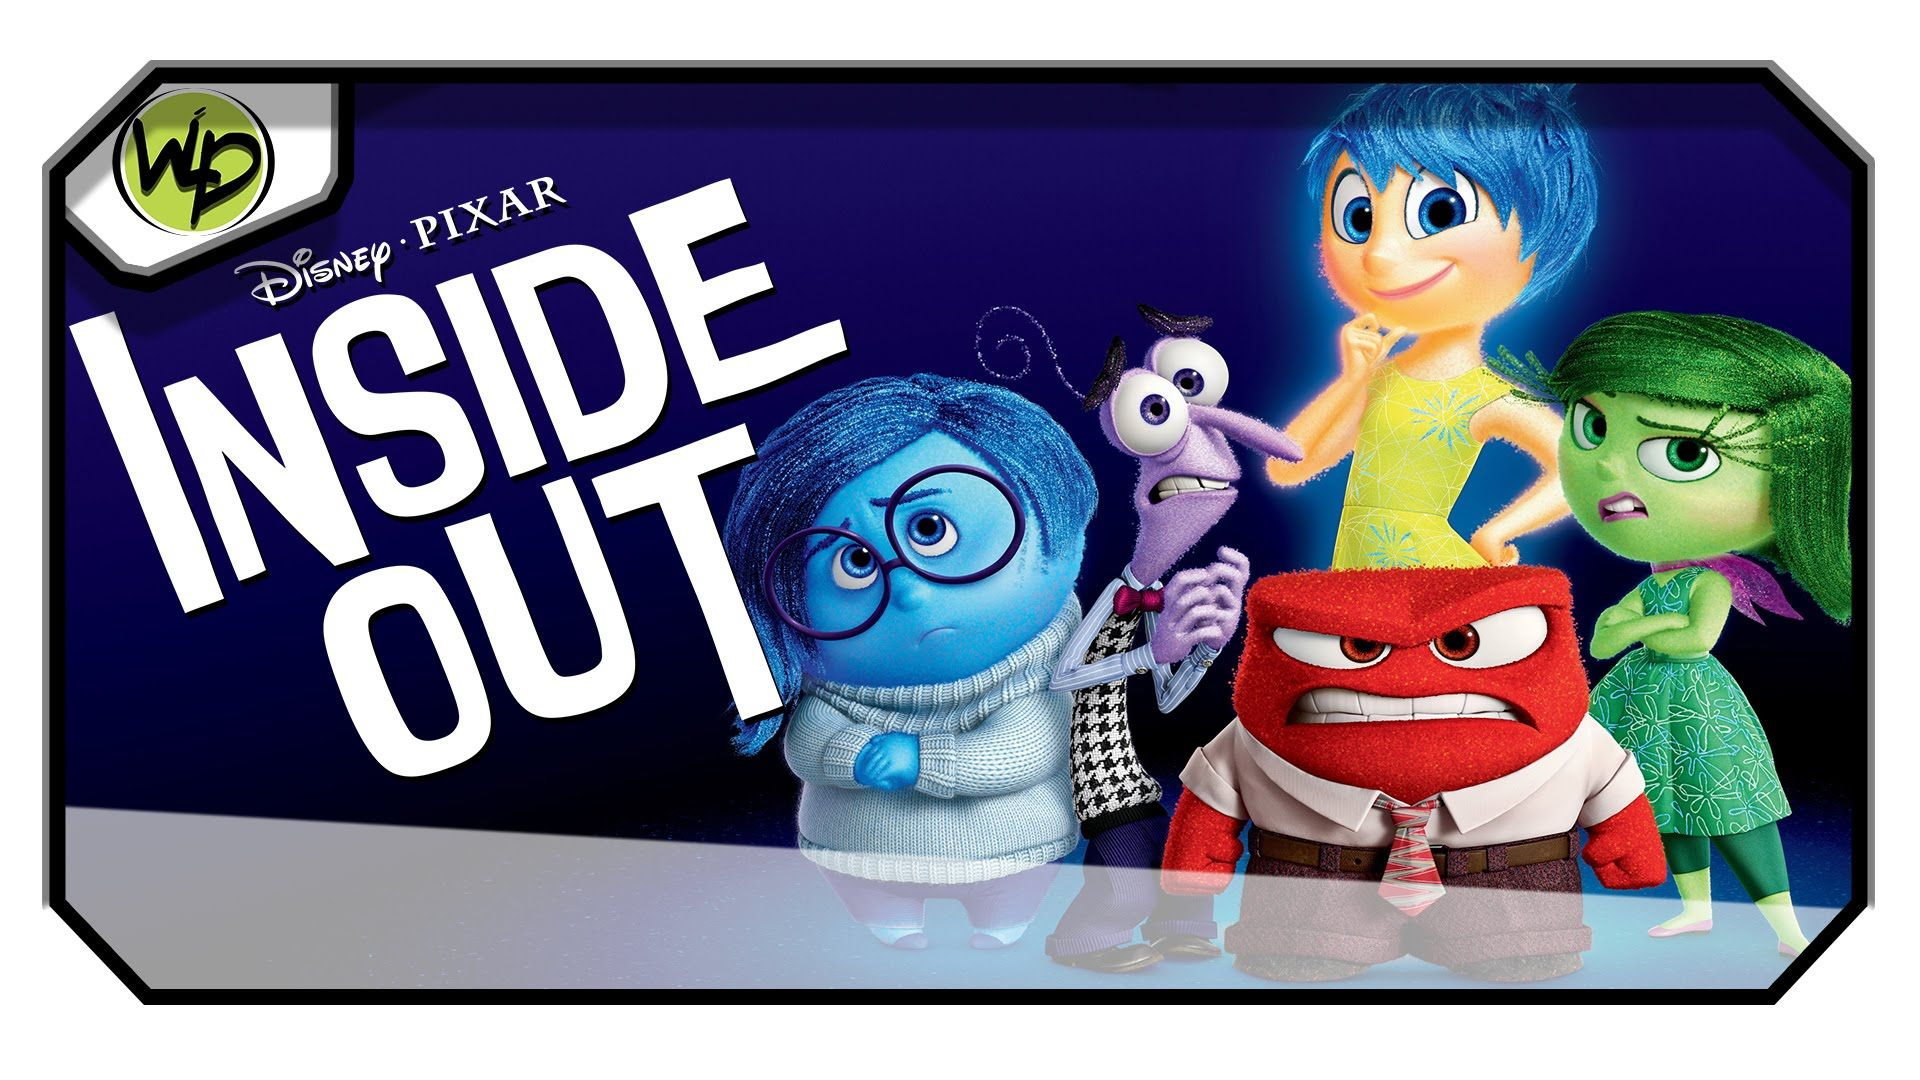 Divertida Mente (Inside Out) - Review, Análise ou Crítica do Filme